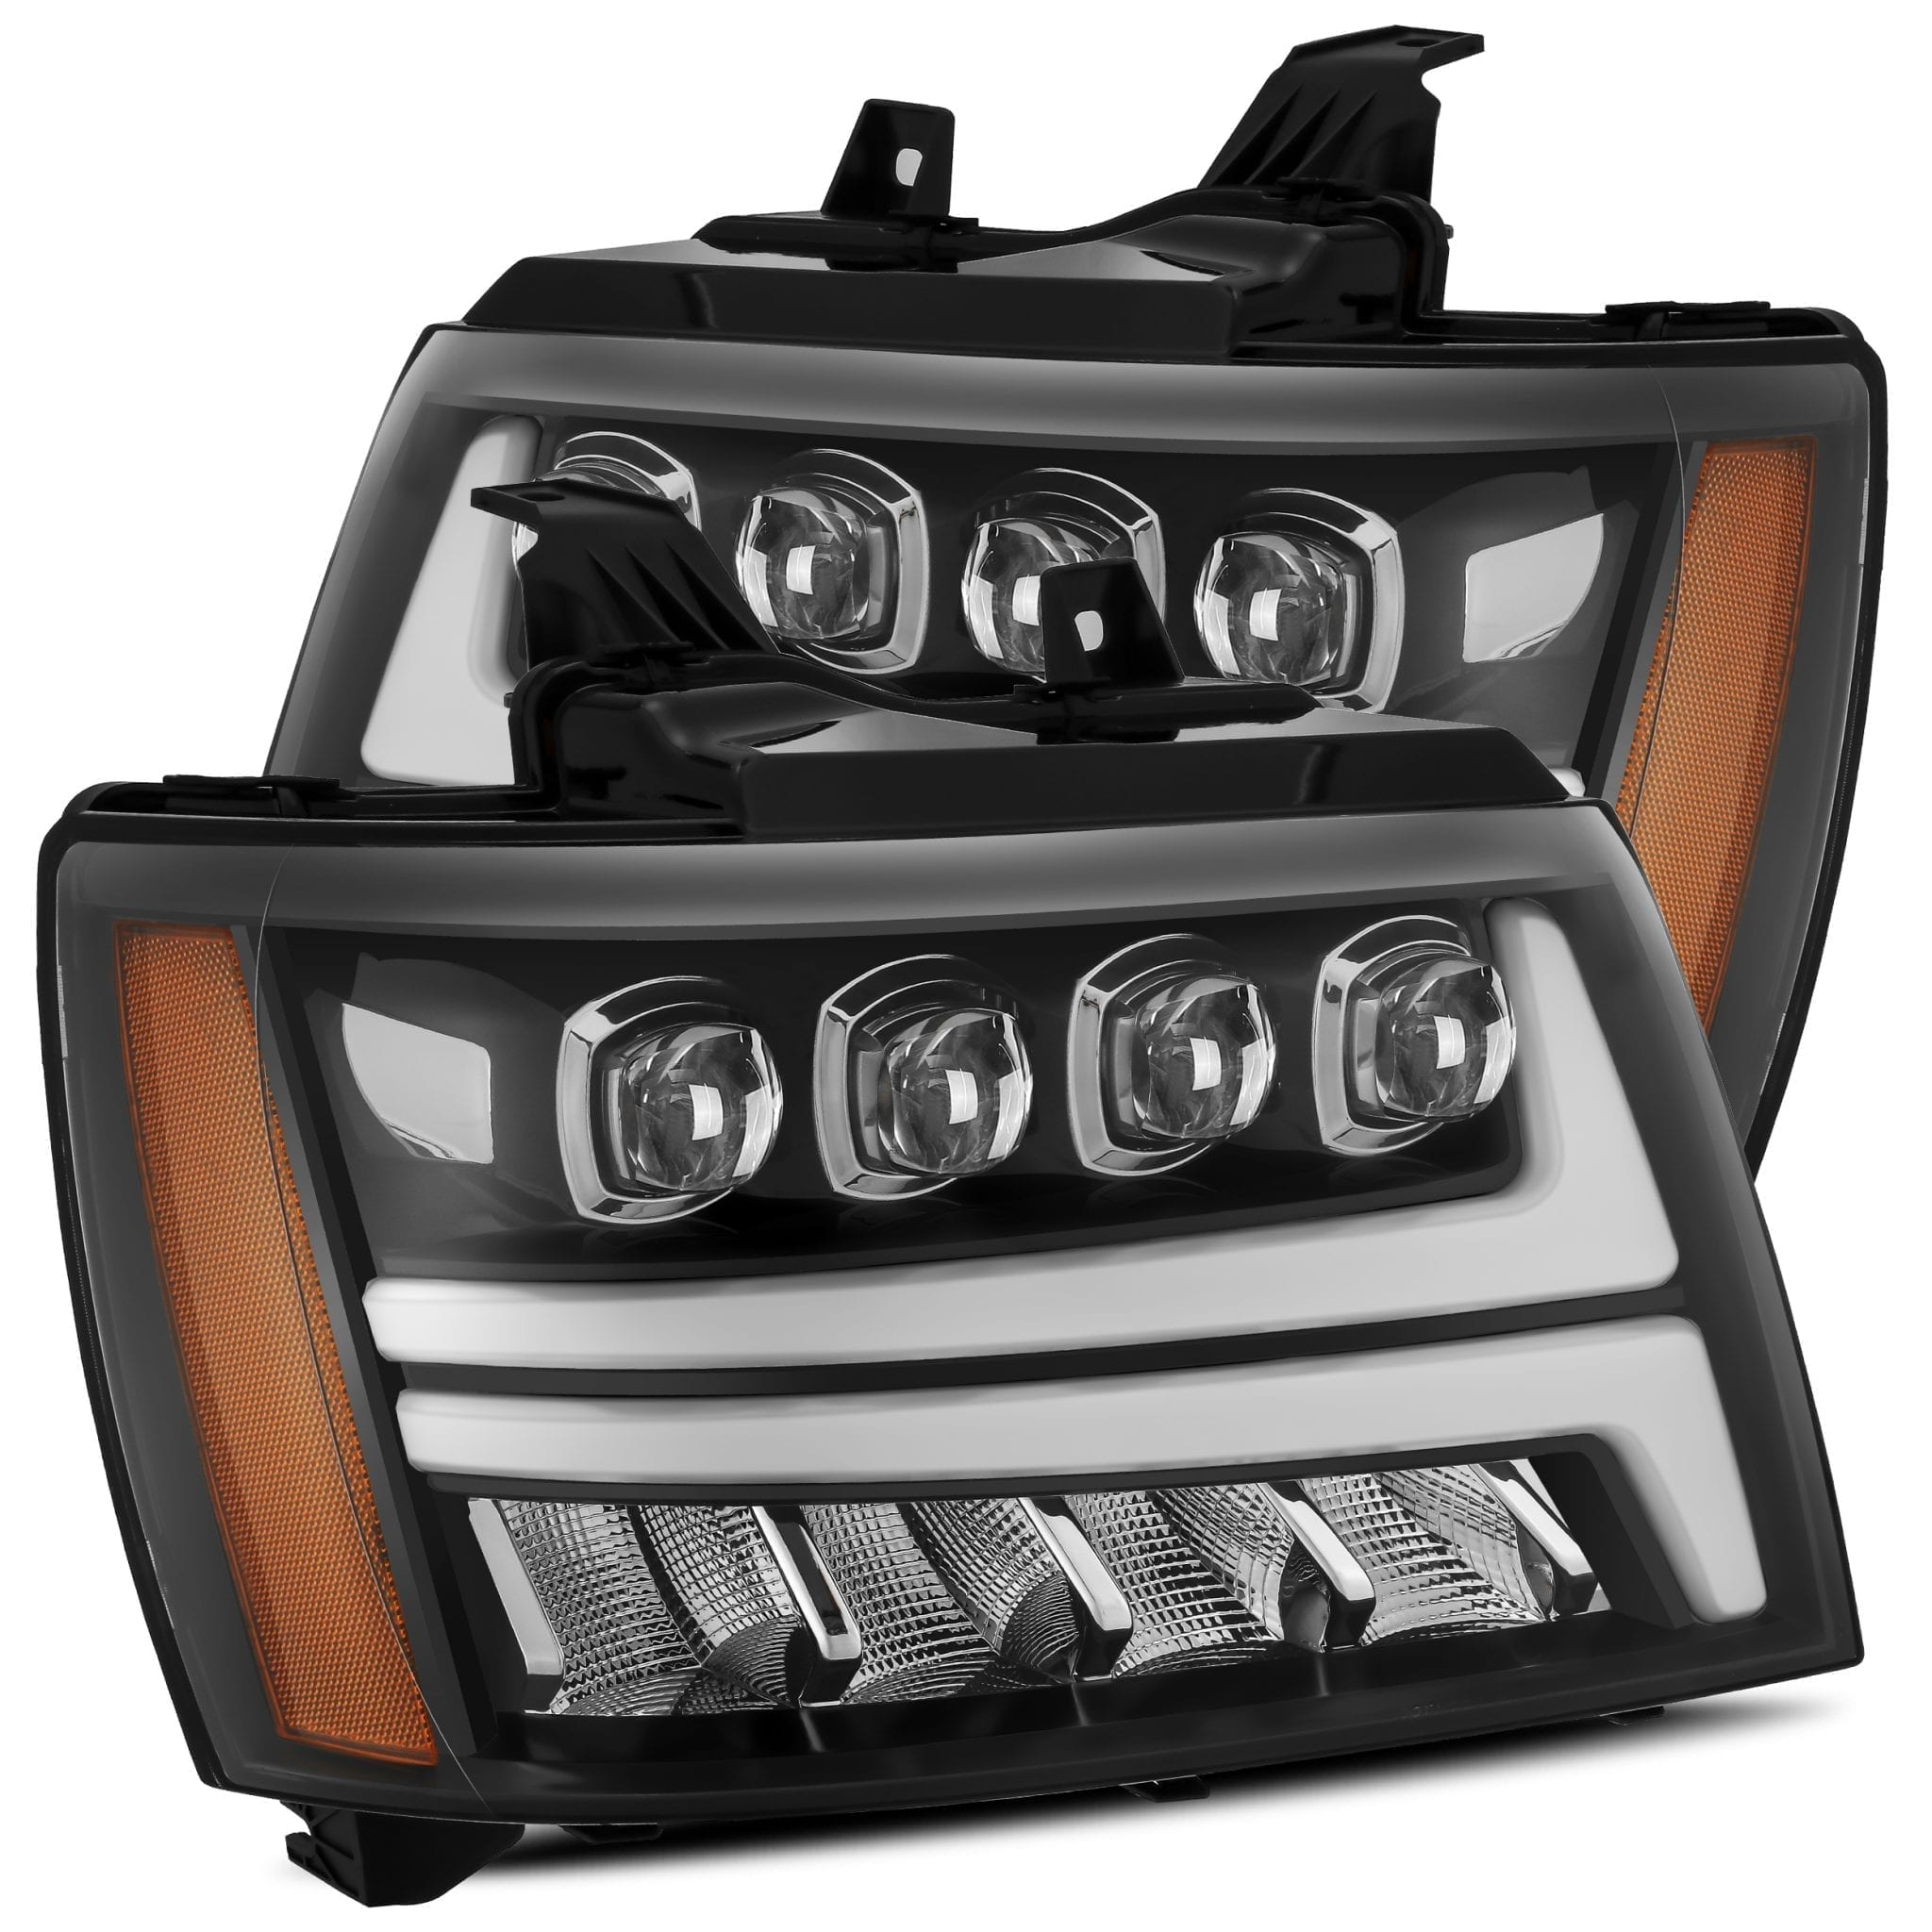 2007 2008 2009 2010 2011 2012 2013 Chevy Tahoe Suburban Avalanche NOVA-Series Full LED Projector Headlights Jet Black